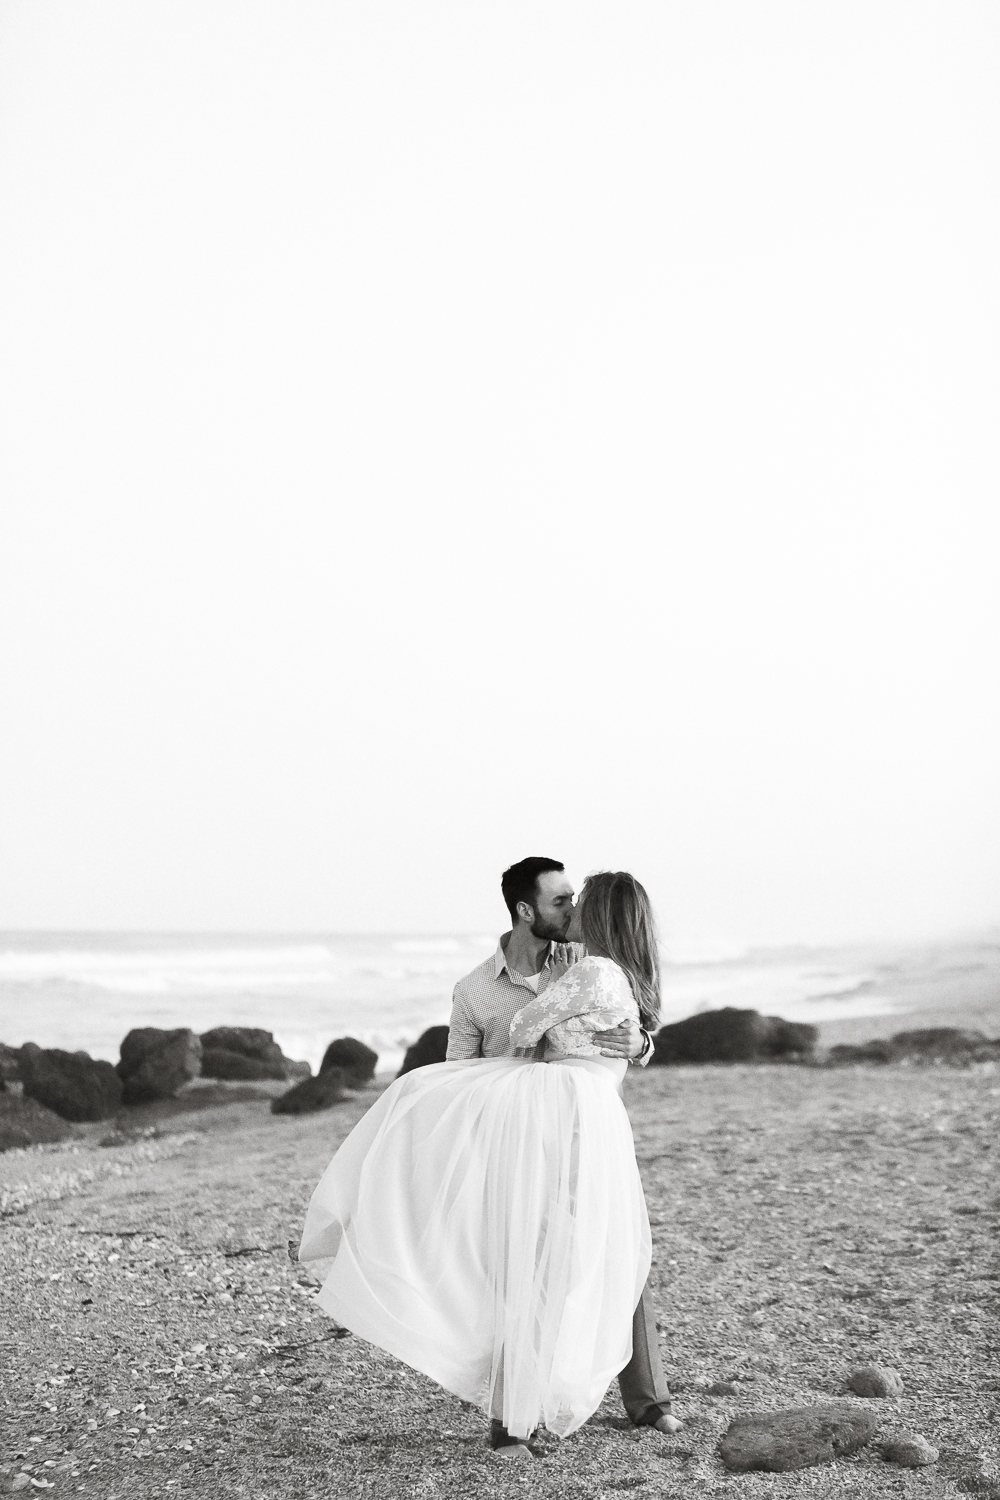 professional engagement pictures in washington oaks gardens and beach